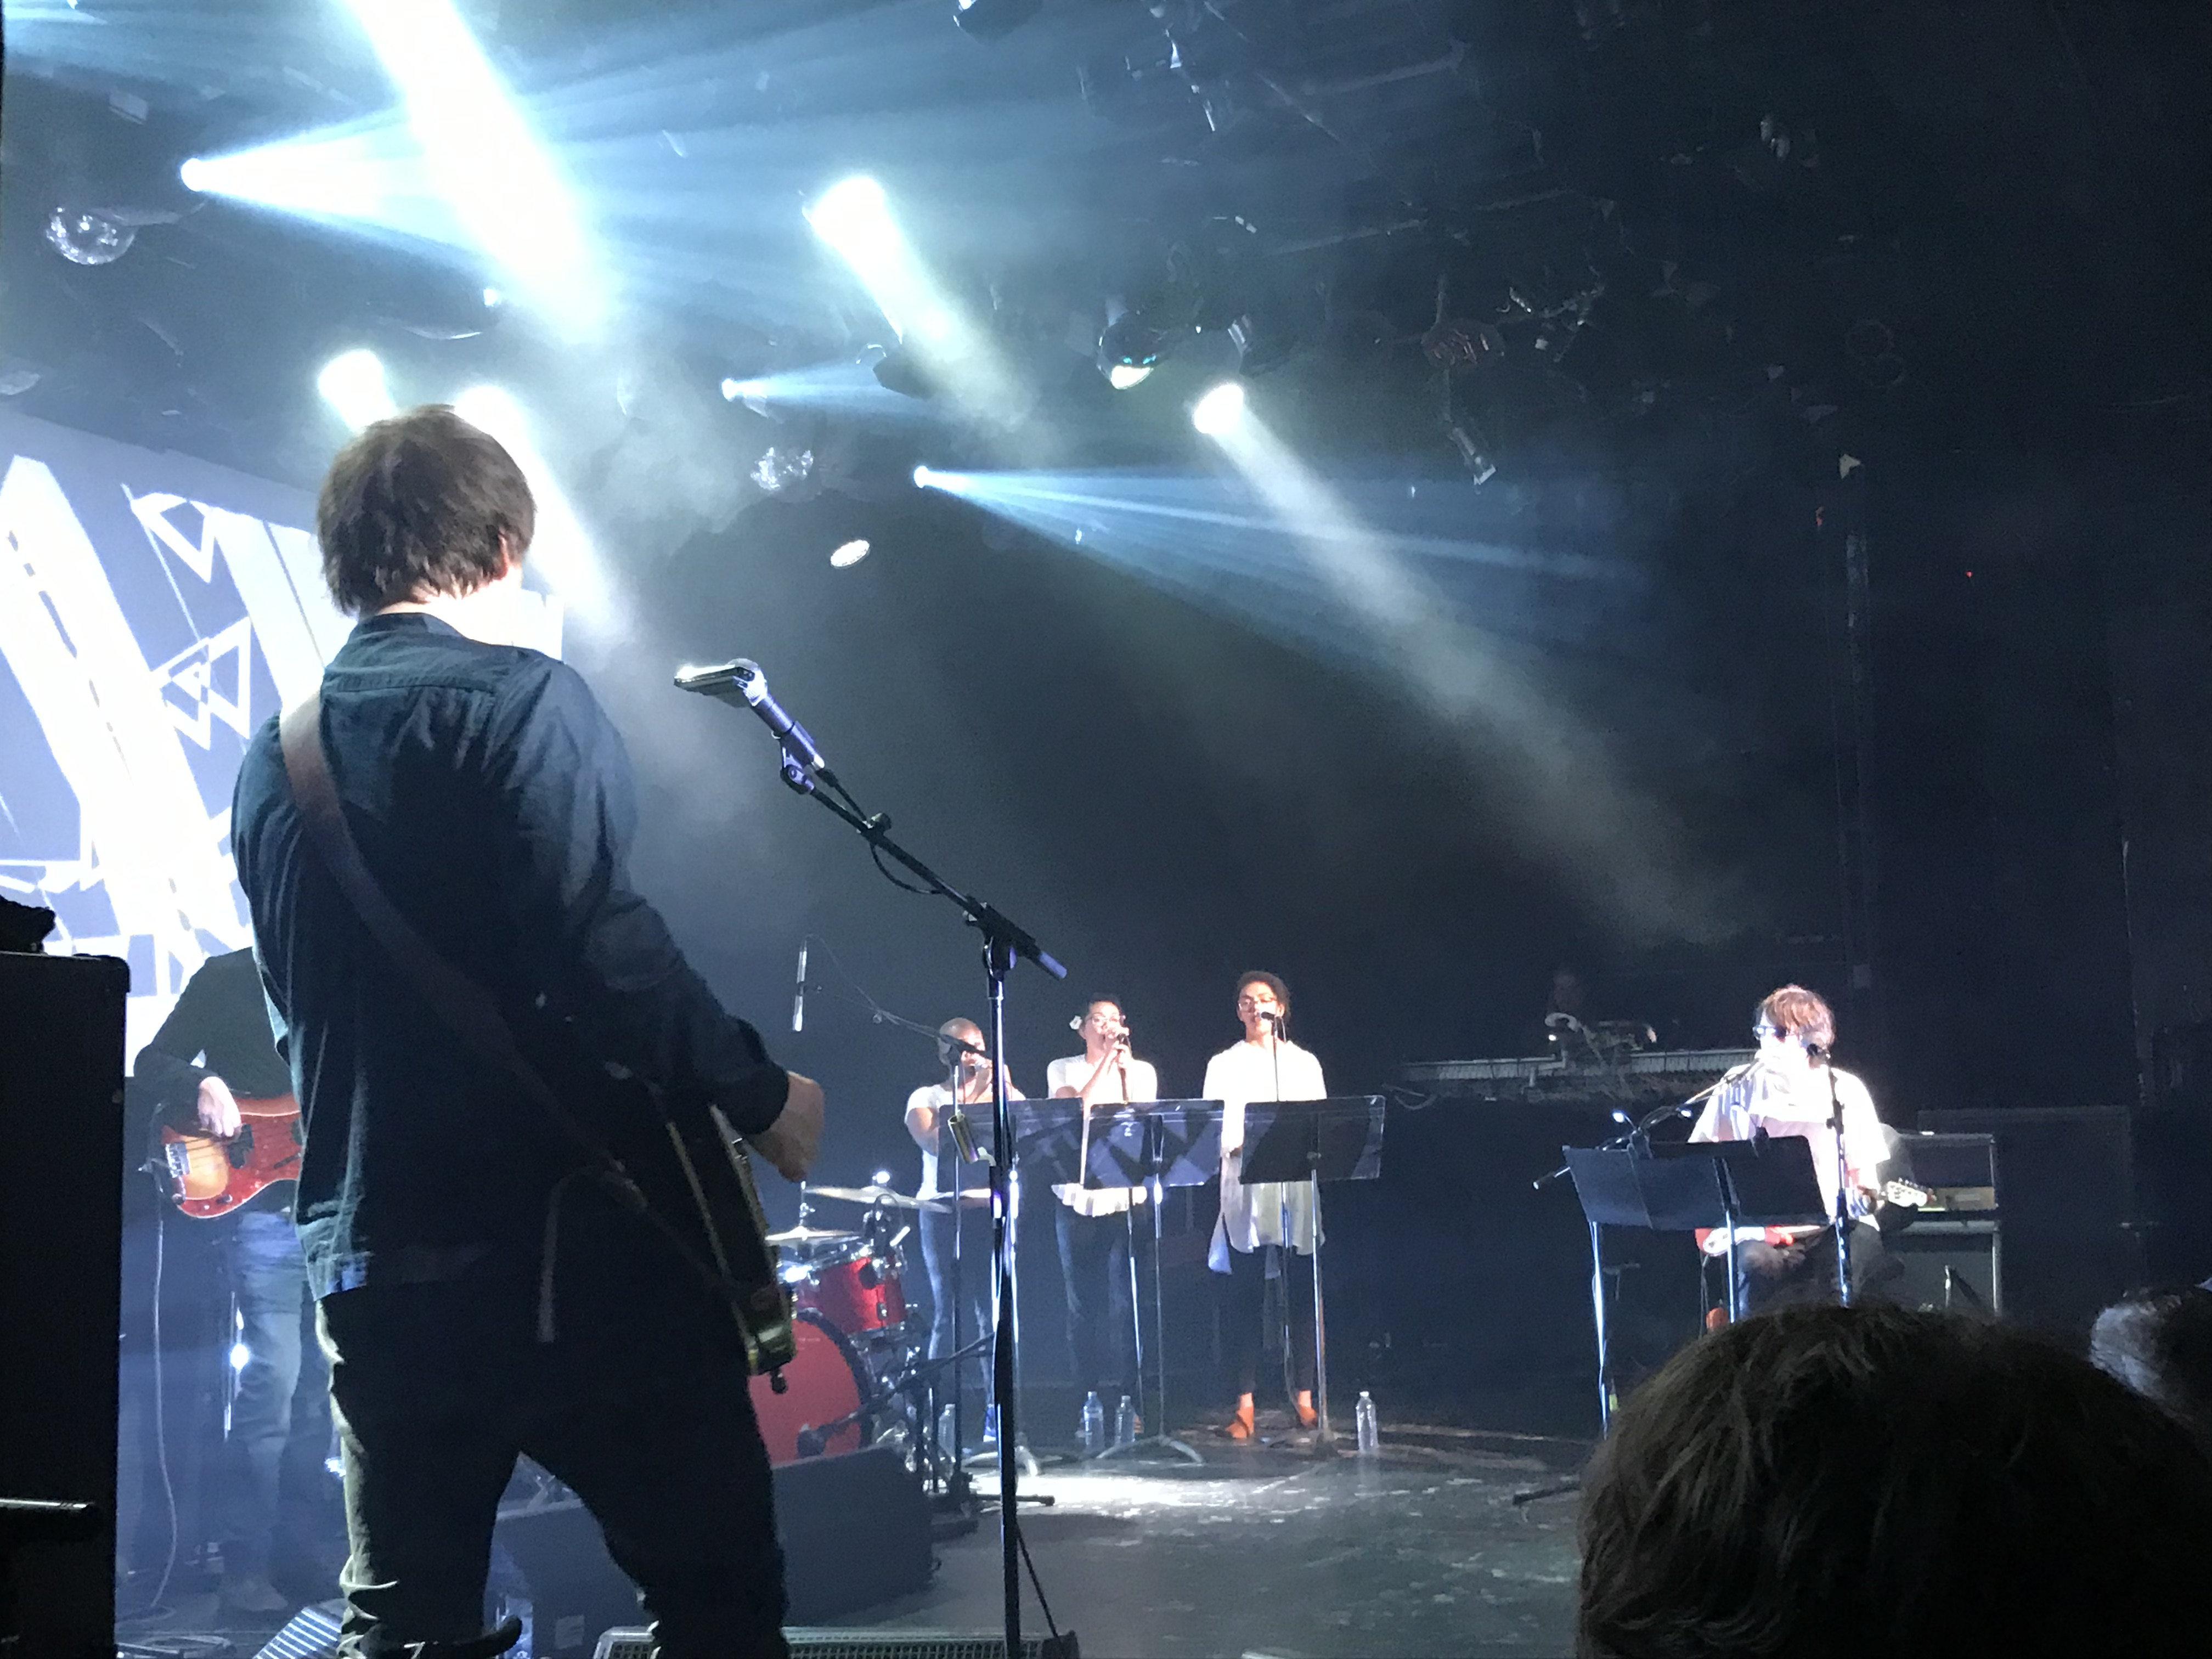 Spiritualized, live review from their April 2nd show, at The Commodore Ballroom, in Vancouver, British Columbia, by Marti Alldred